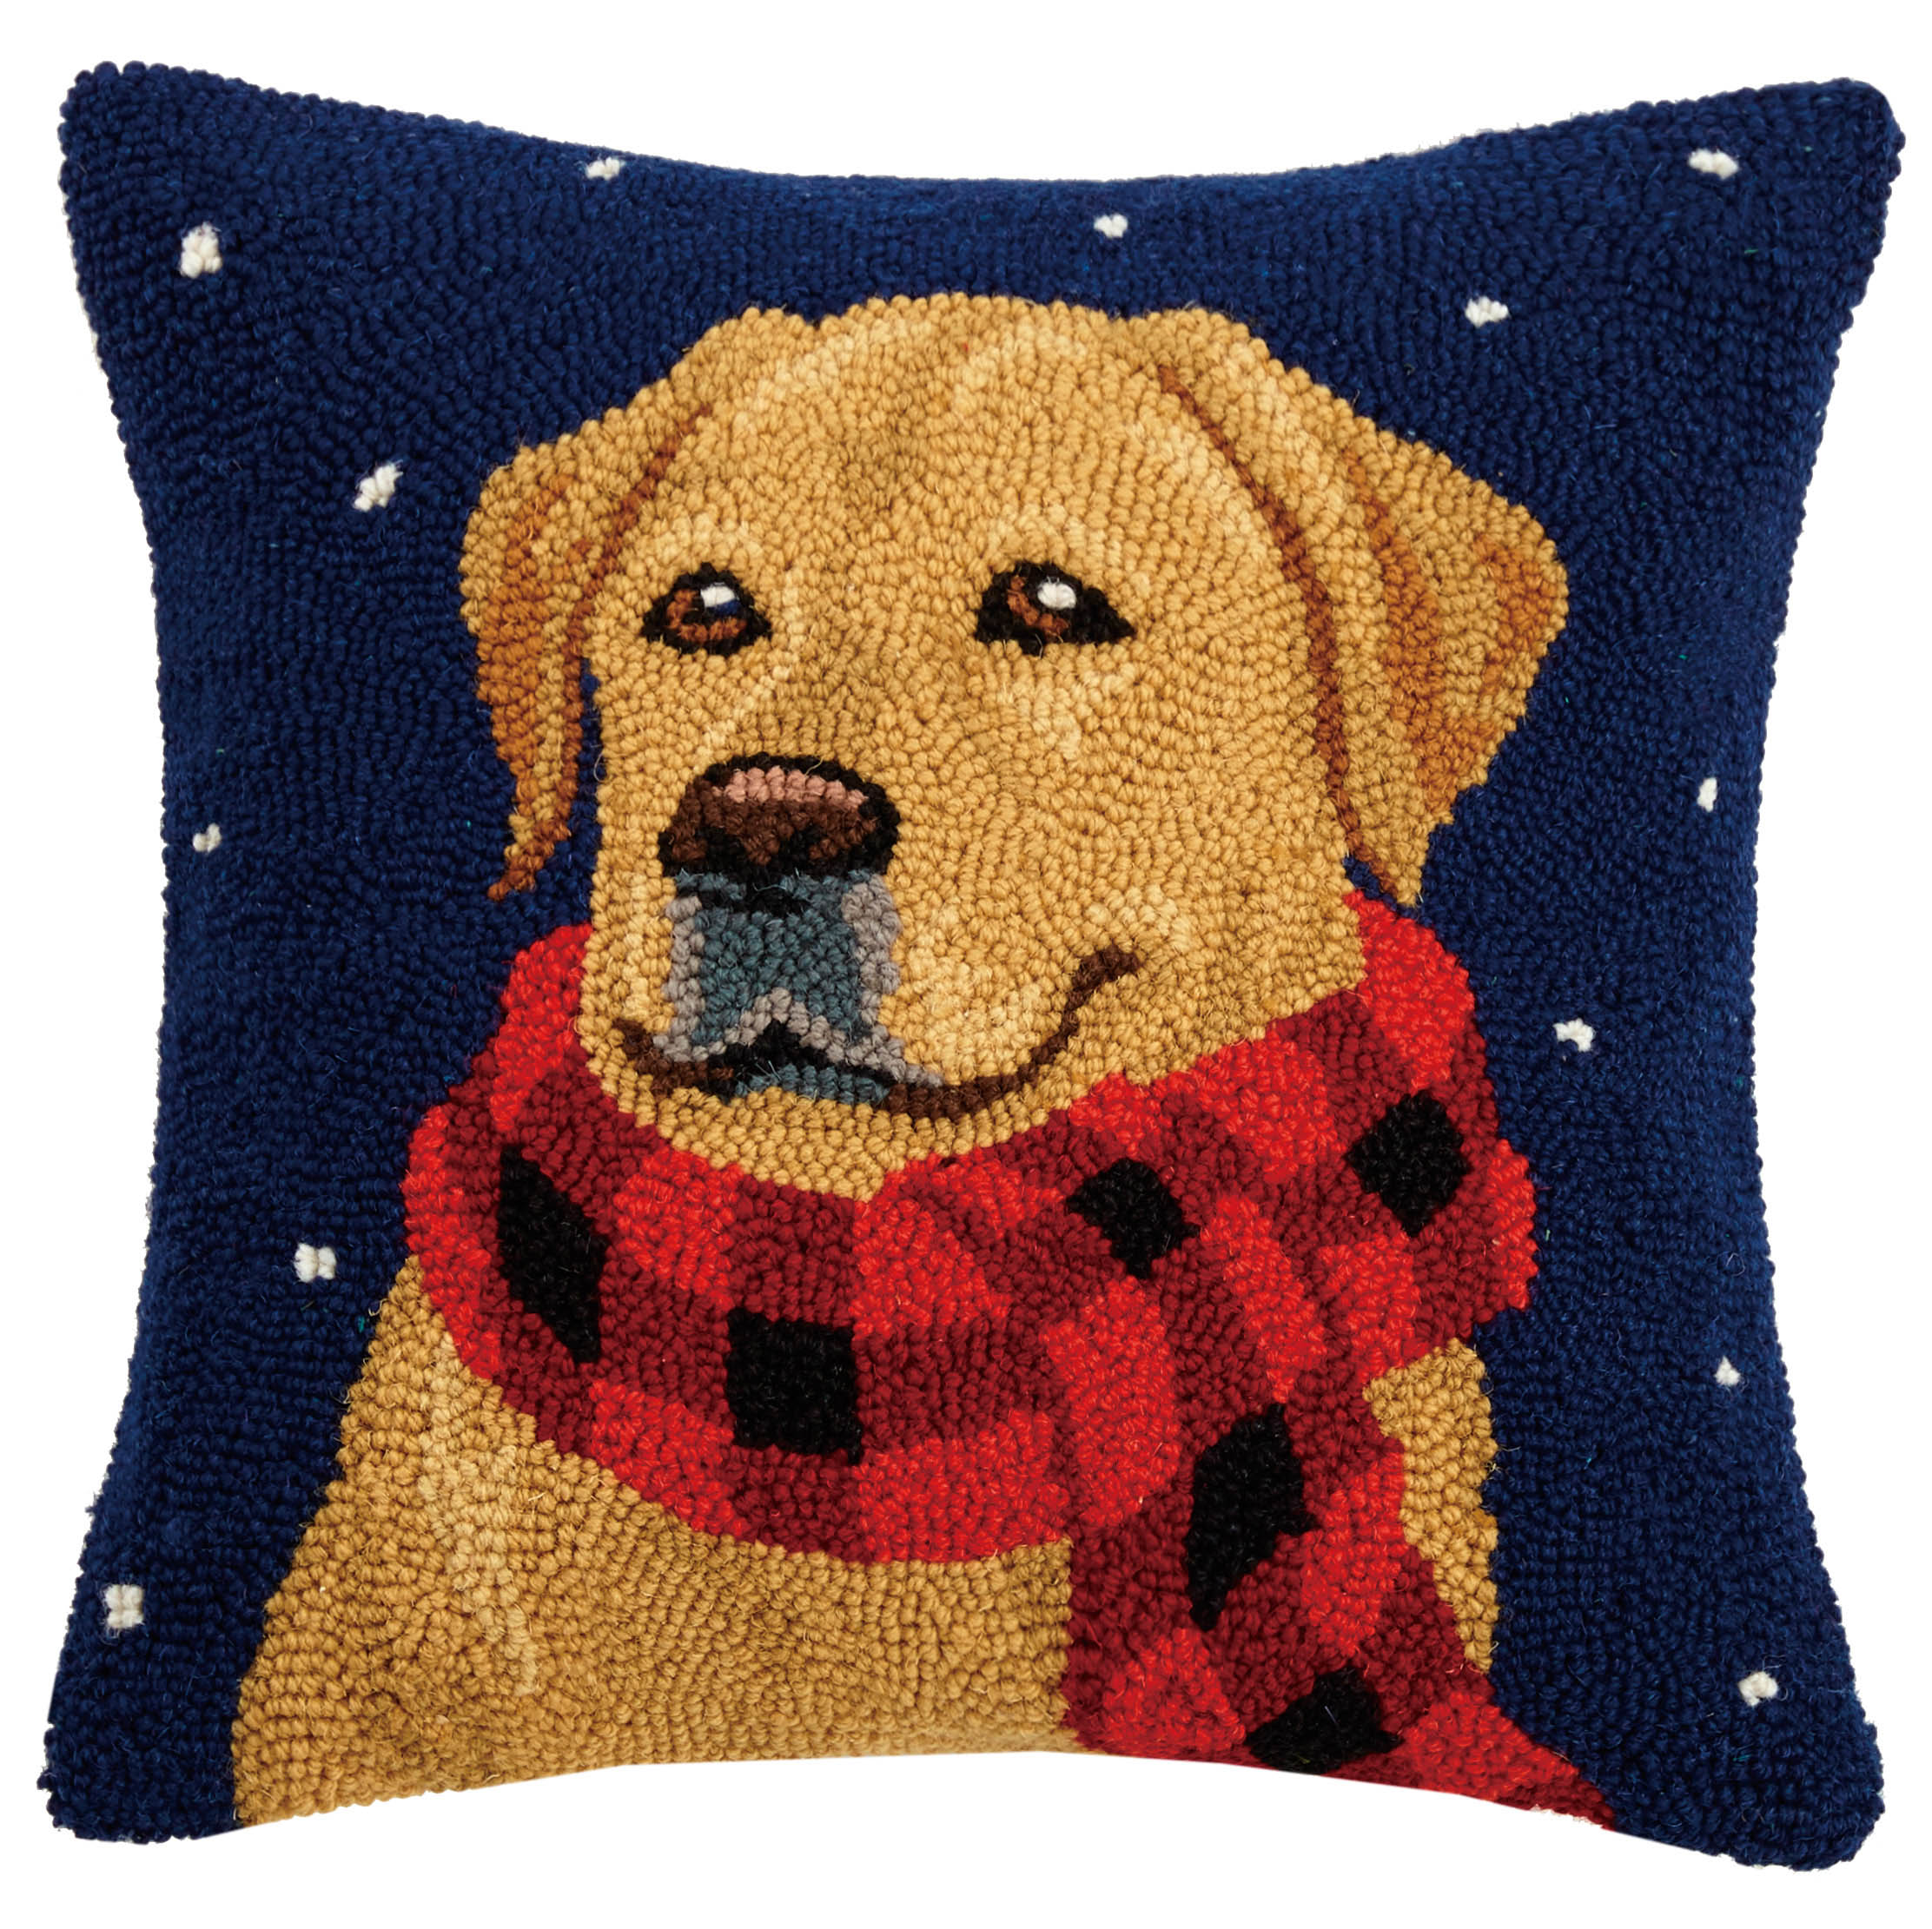 Lab in Scarf Hooked Pillow